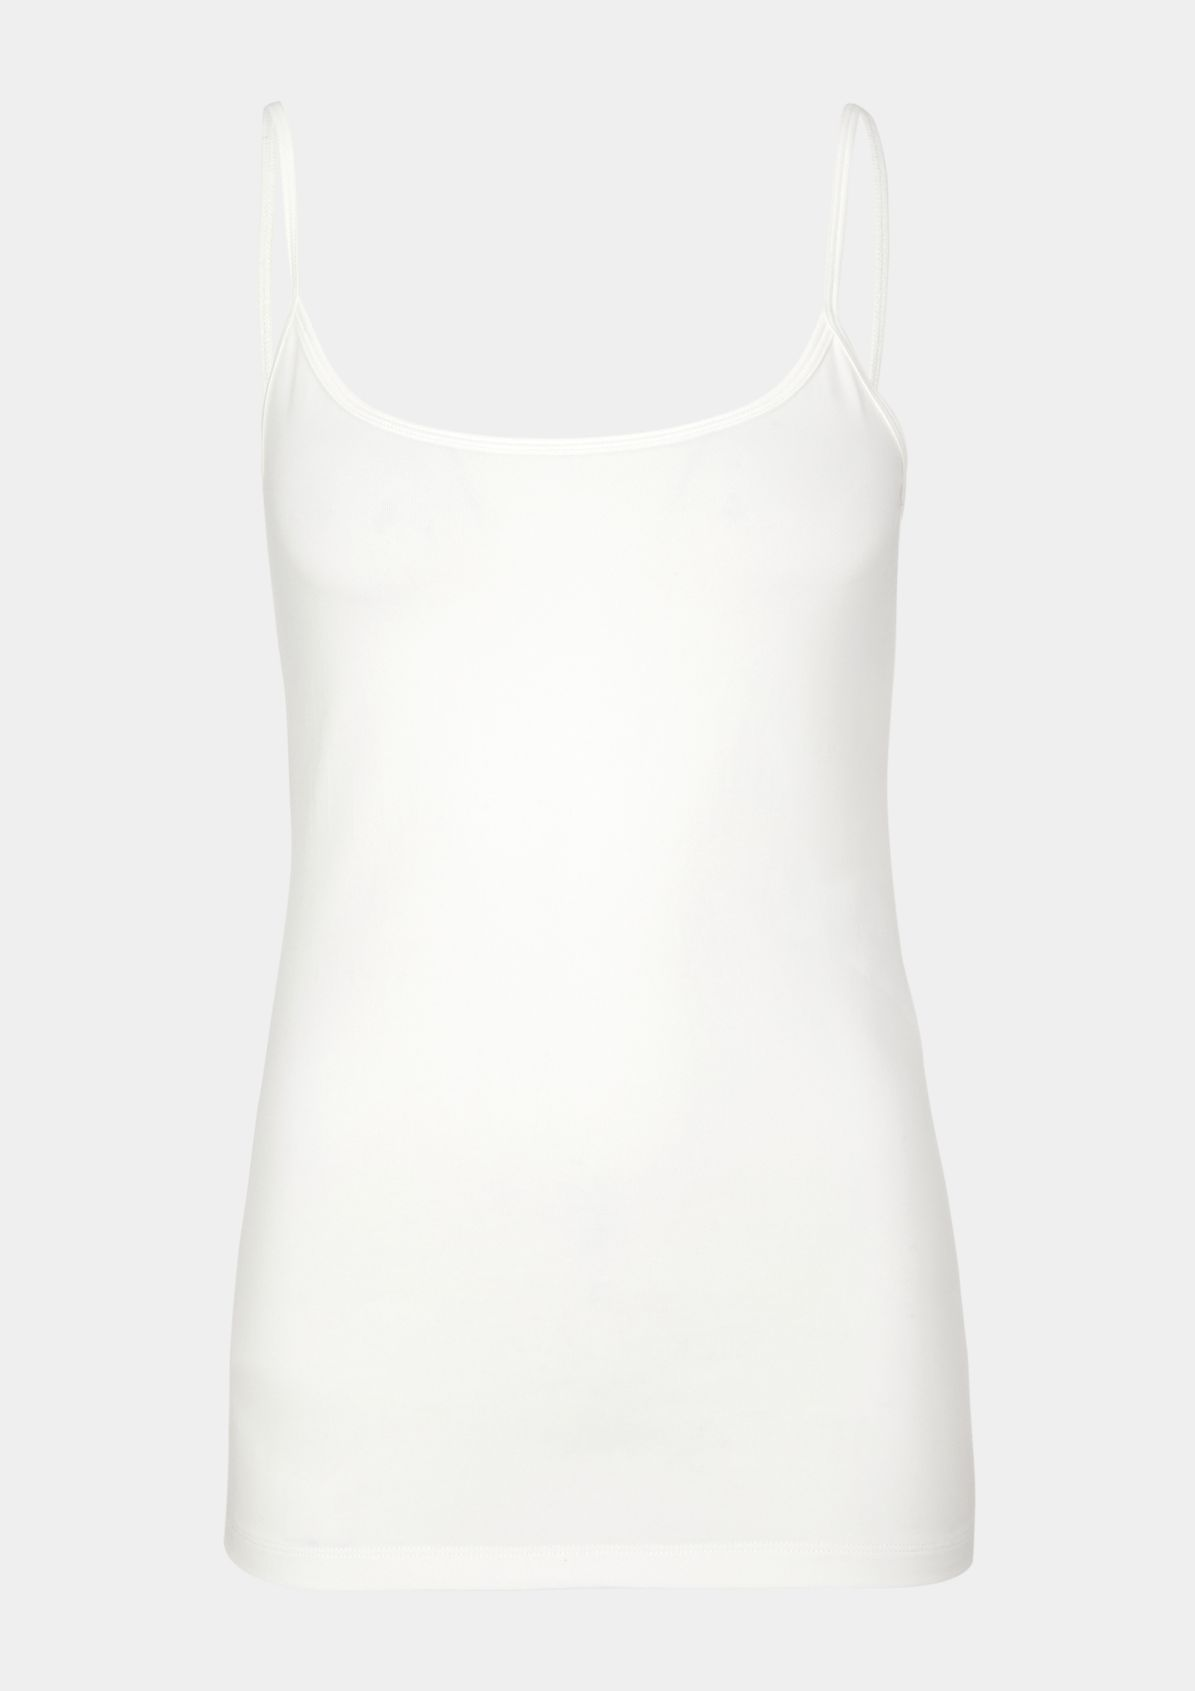 Jersey top with spaghetti straps from comma